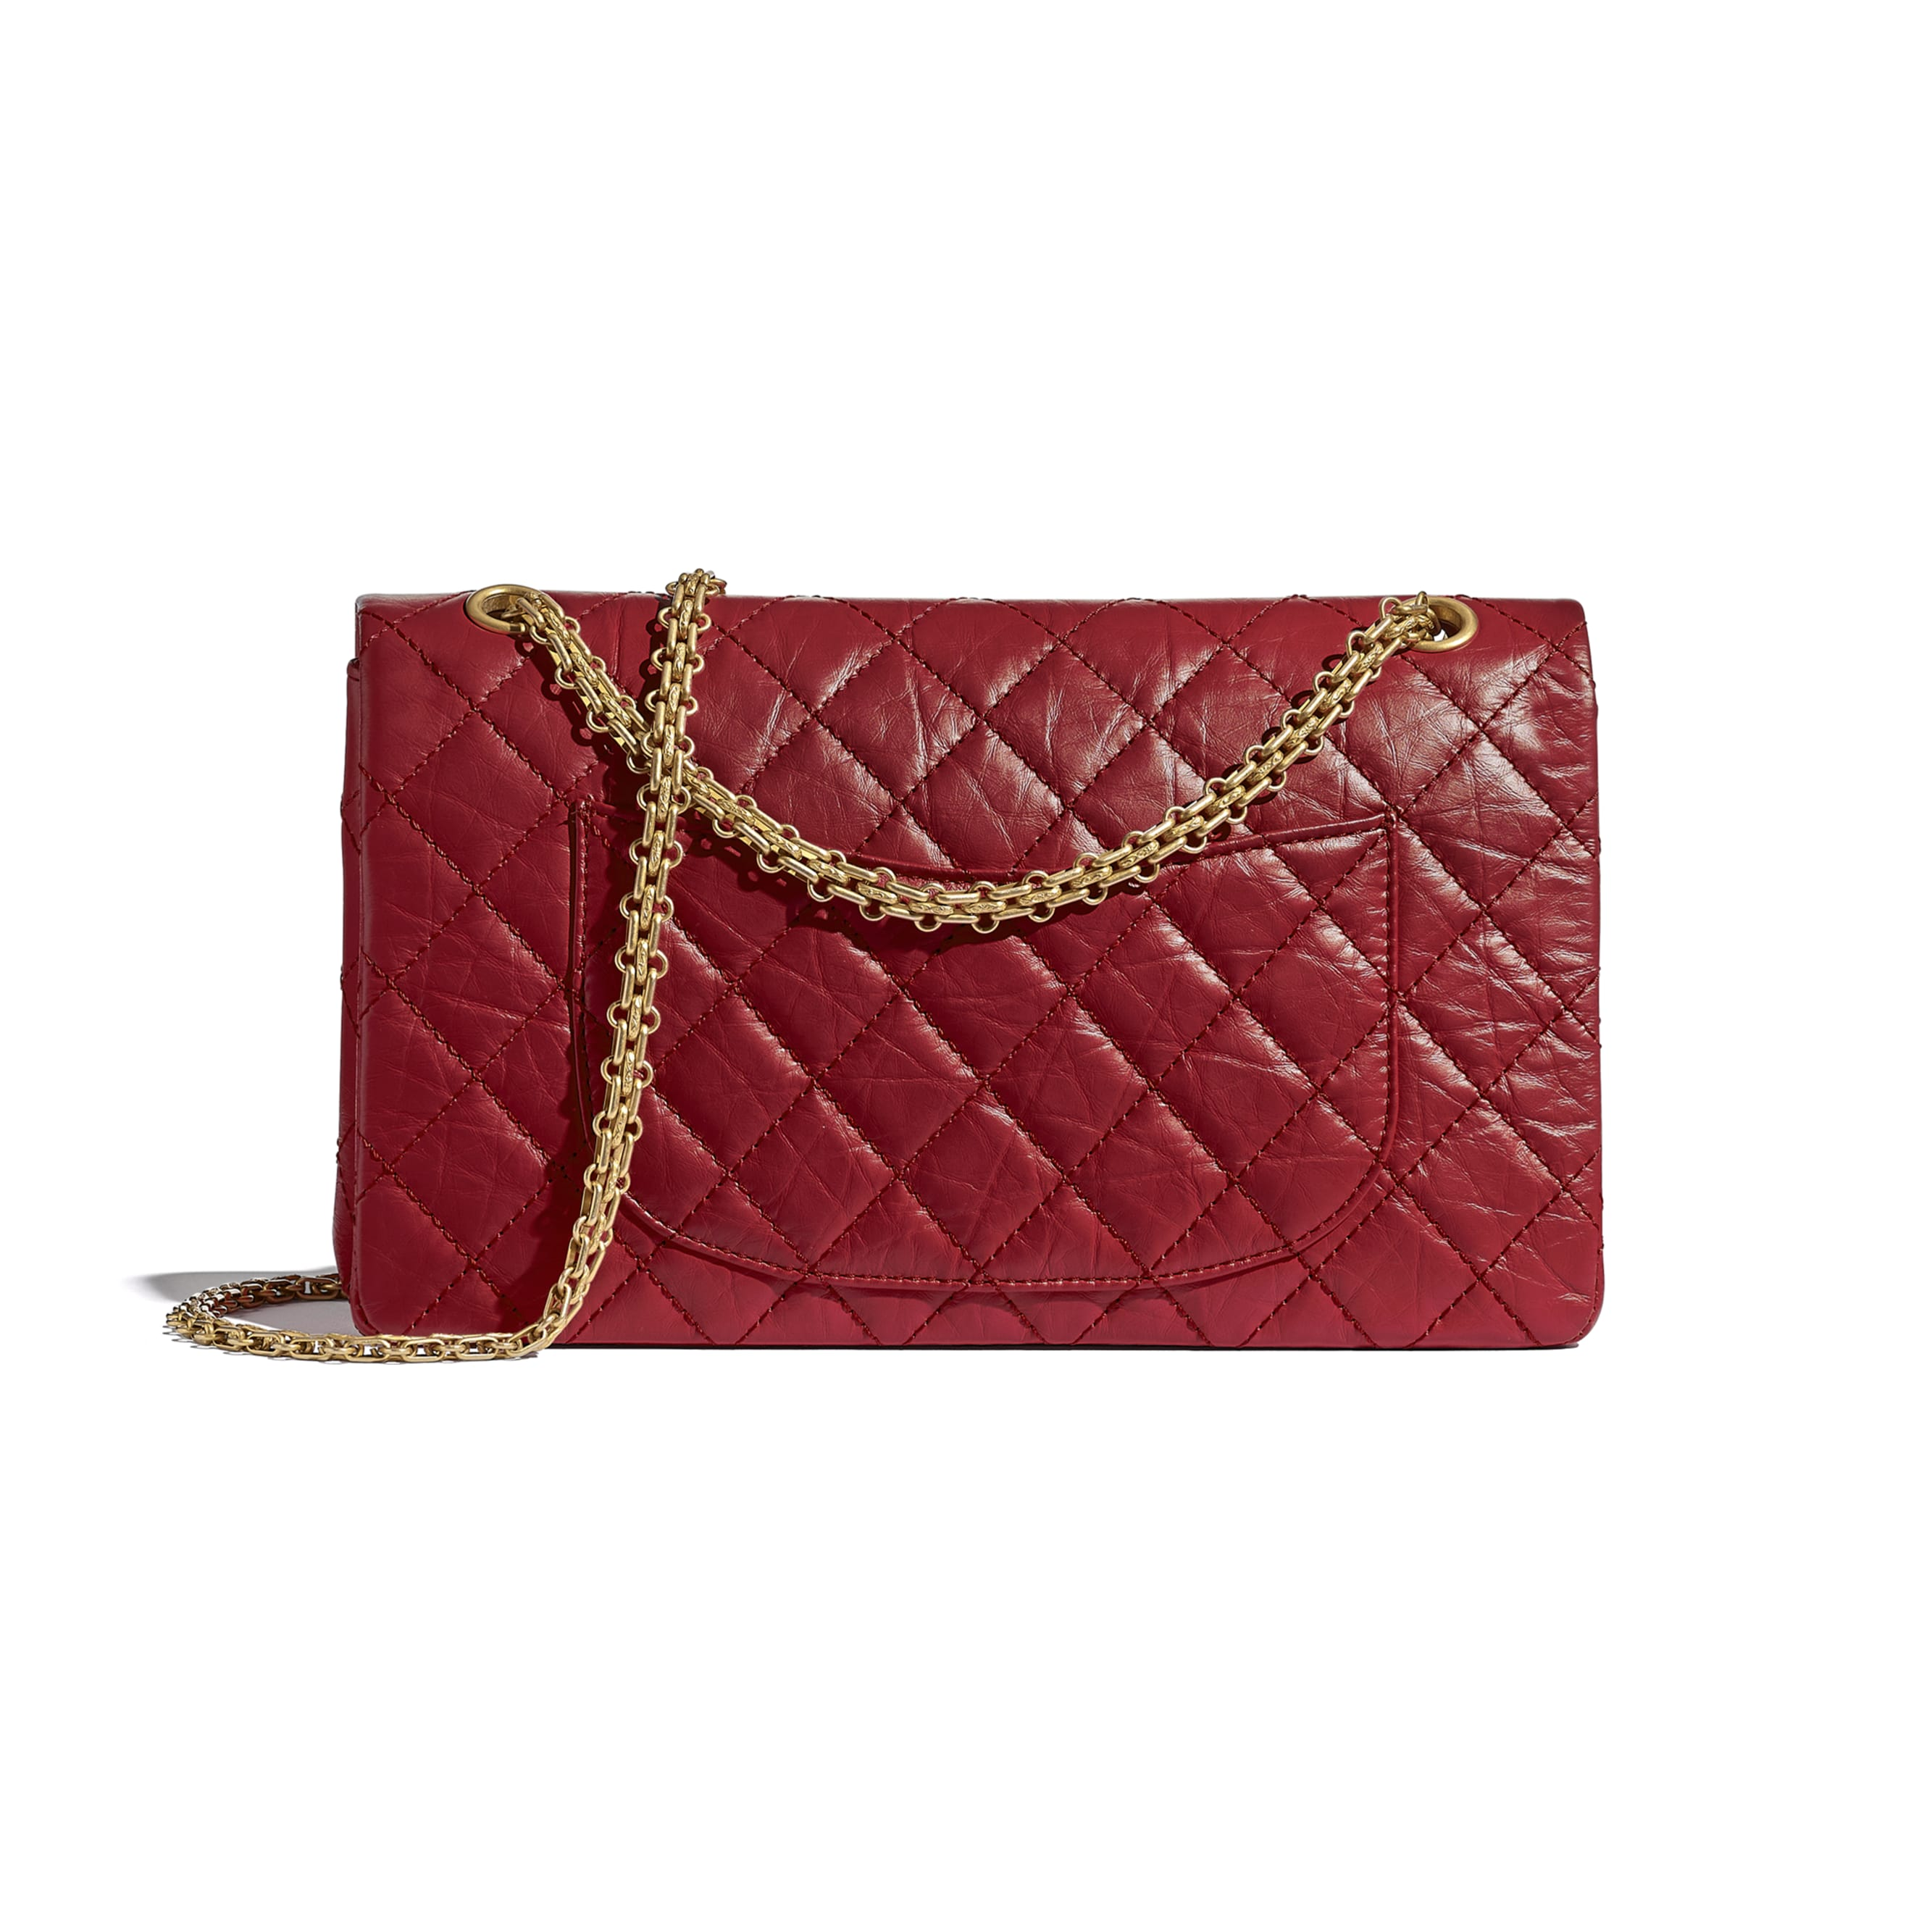 Large 2.55 Handbag - Red - Aged Calfskin & Gold-Tone Metal - CHANEL - Alternative view - see standard sized version